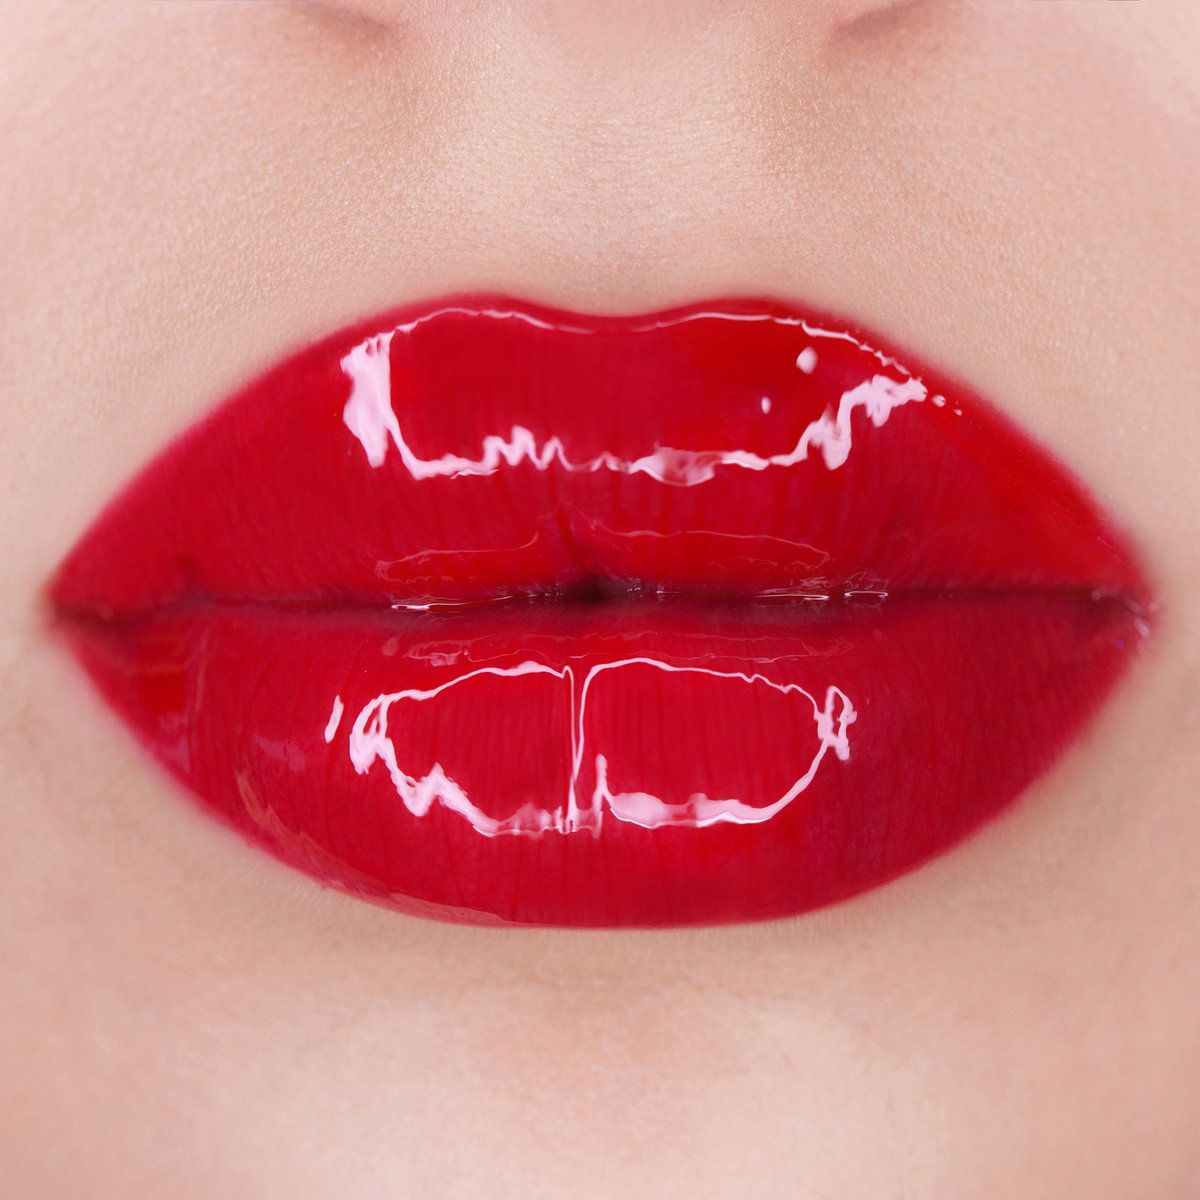 Maraschino Cherry Lip Gloss Cherry Red In 2020 Wet Lips